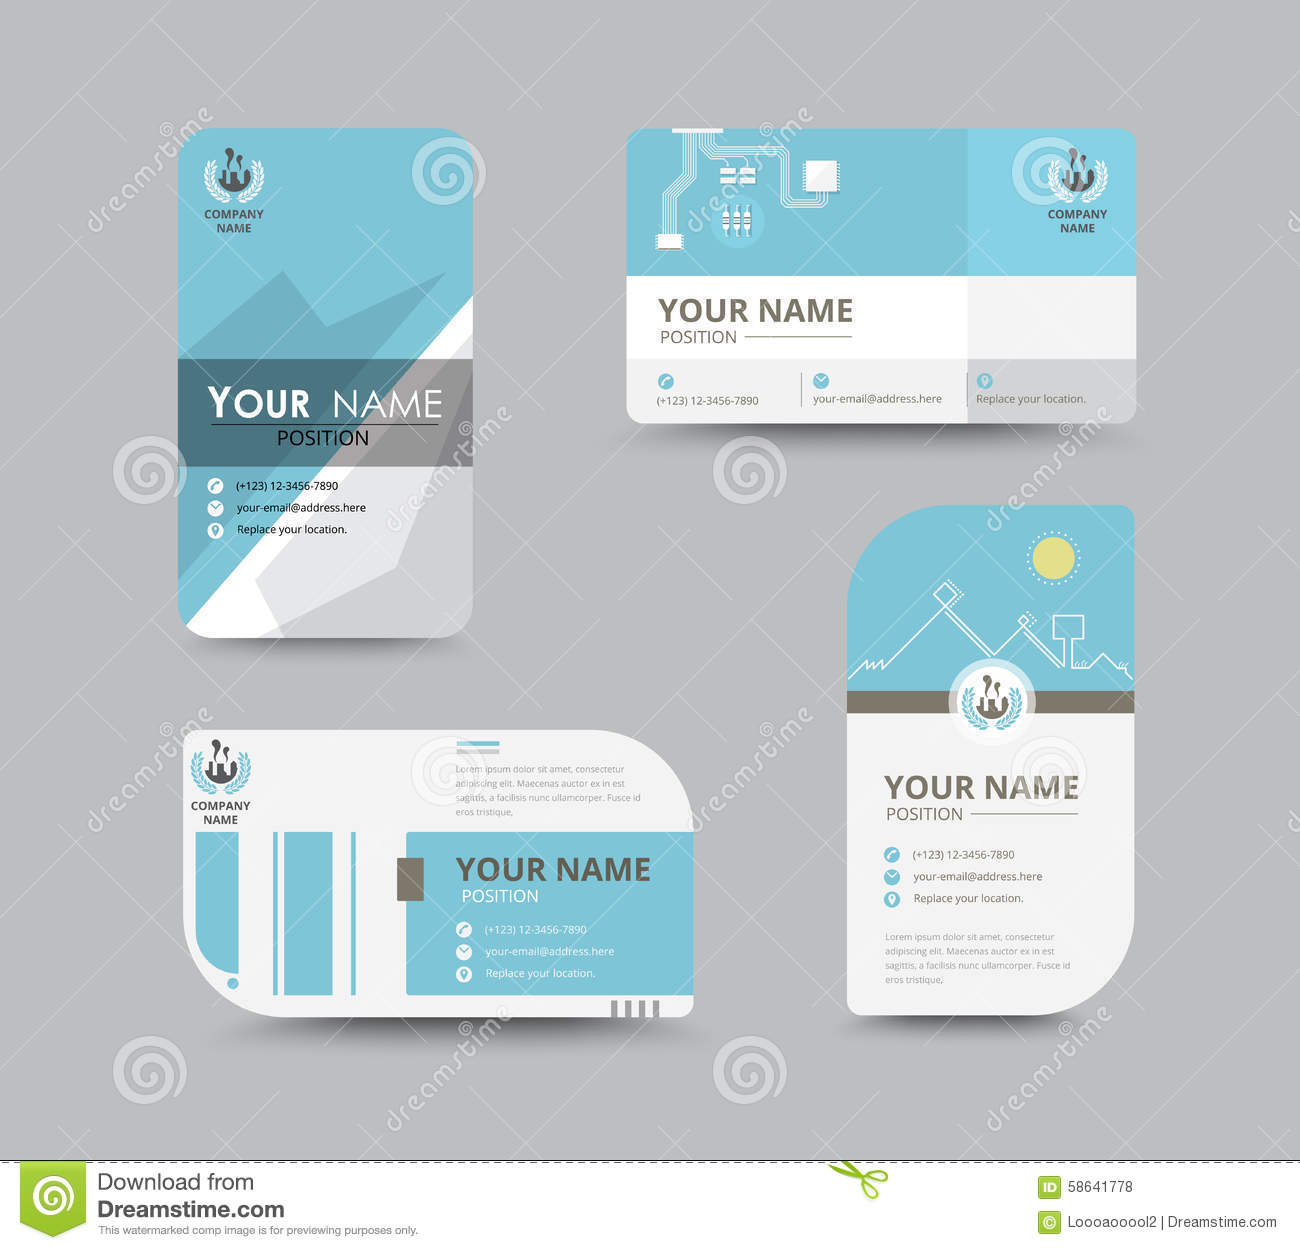 Business name card design for corporation card template vector download business name card design for corporation card template vector stock vector illustration reheart Images